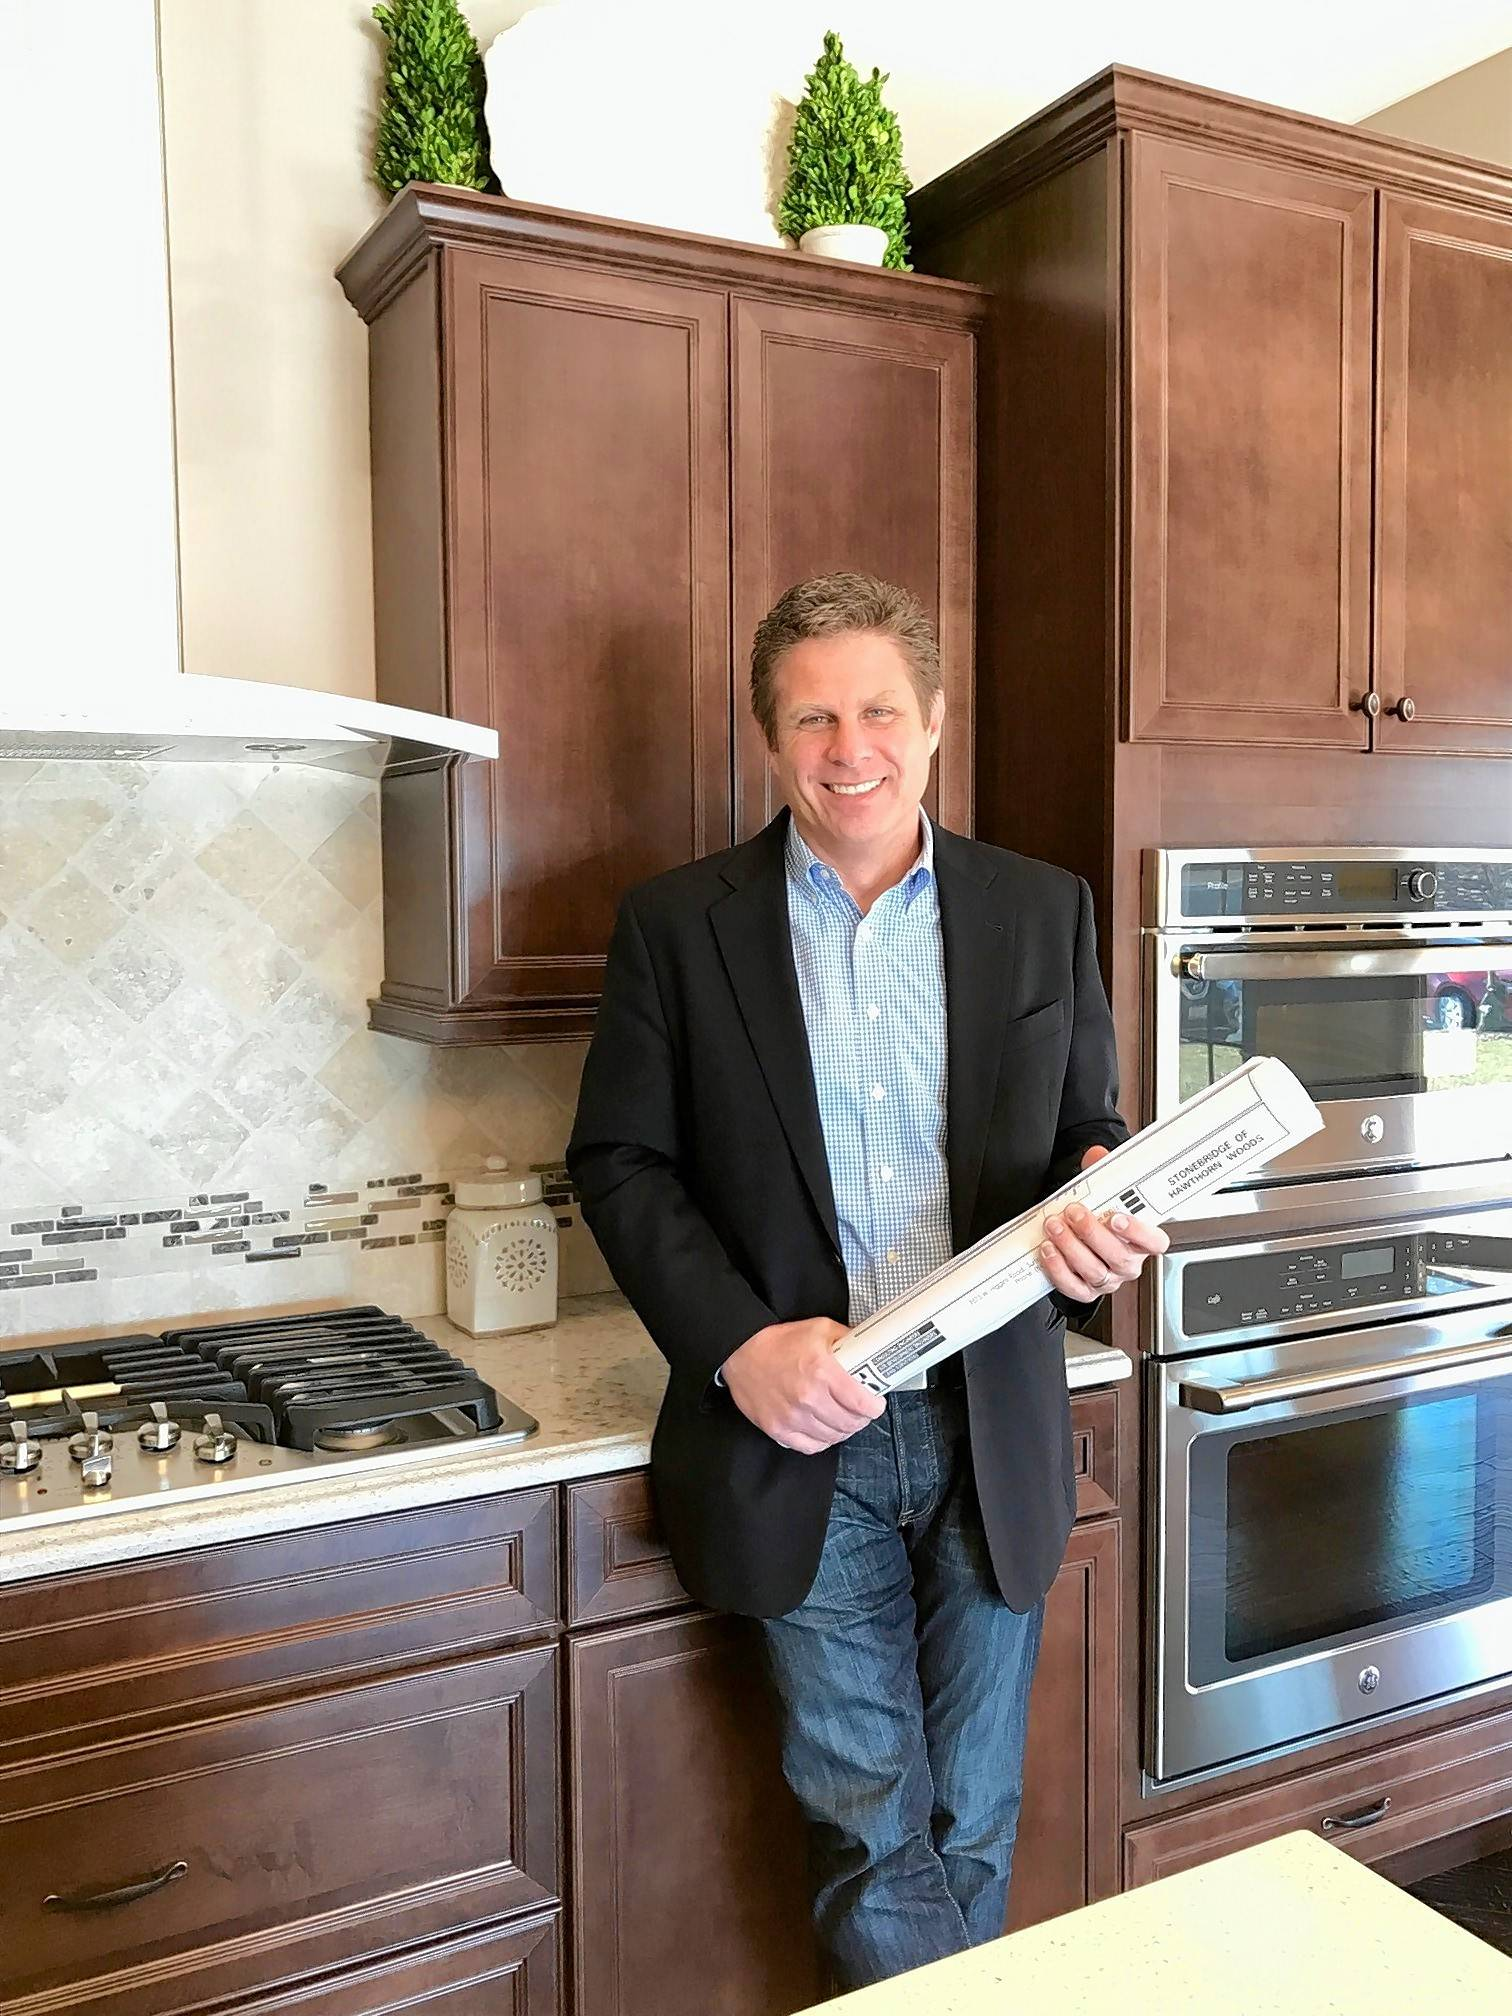 Chris Coleman of William Ryan Homes has seen much change in the industry since his first job in 1988.